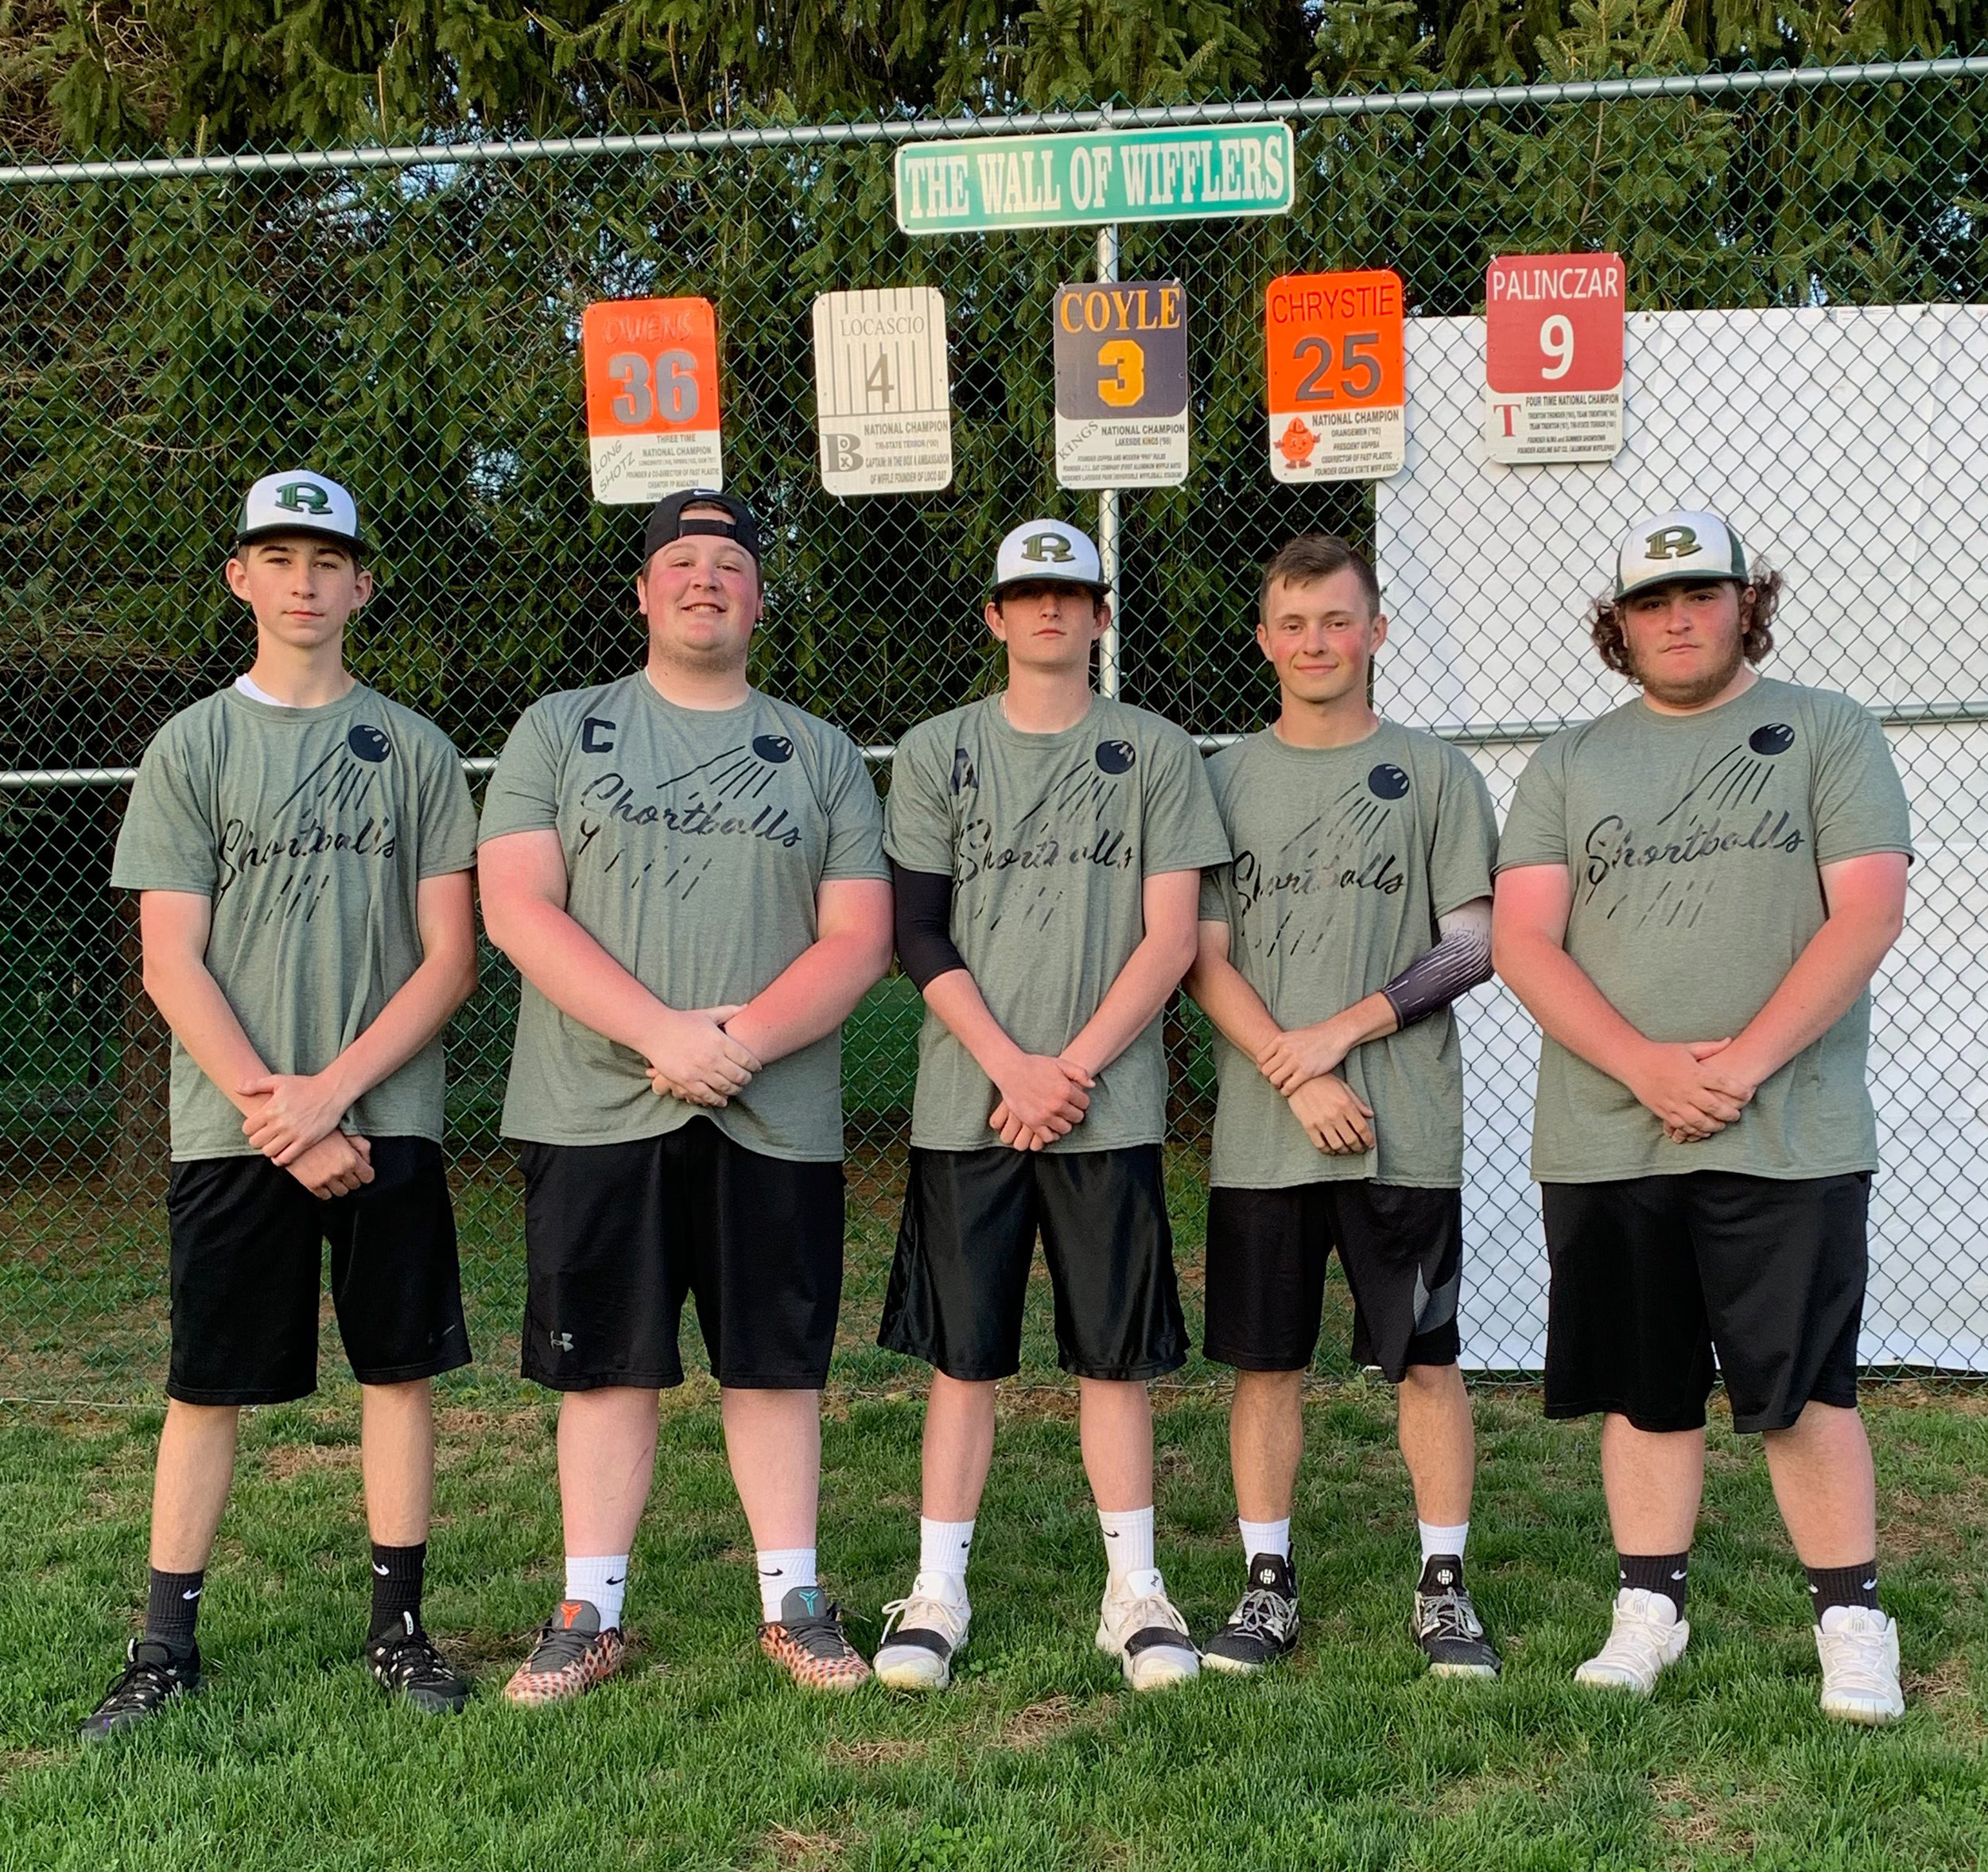 Shortballs (r-l: Teddy Drecher, Joey VanHouten, Frankie Campanile, Nate Smith, Vinny Albanese (April 20, 2019)